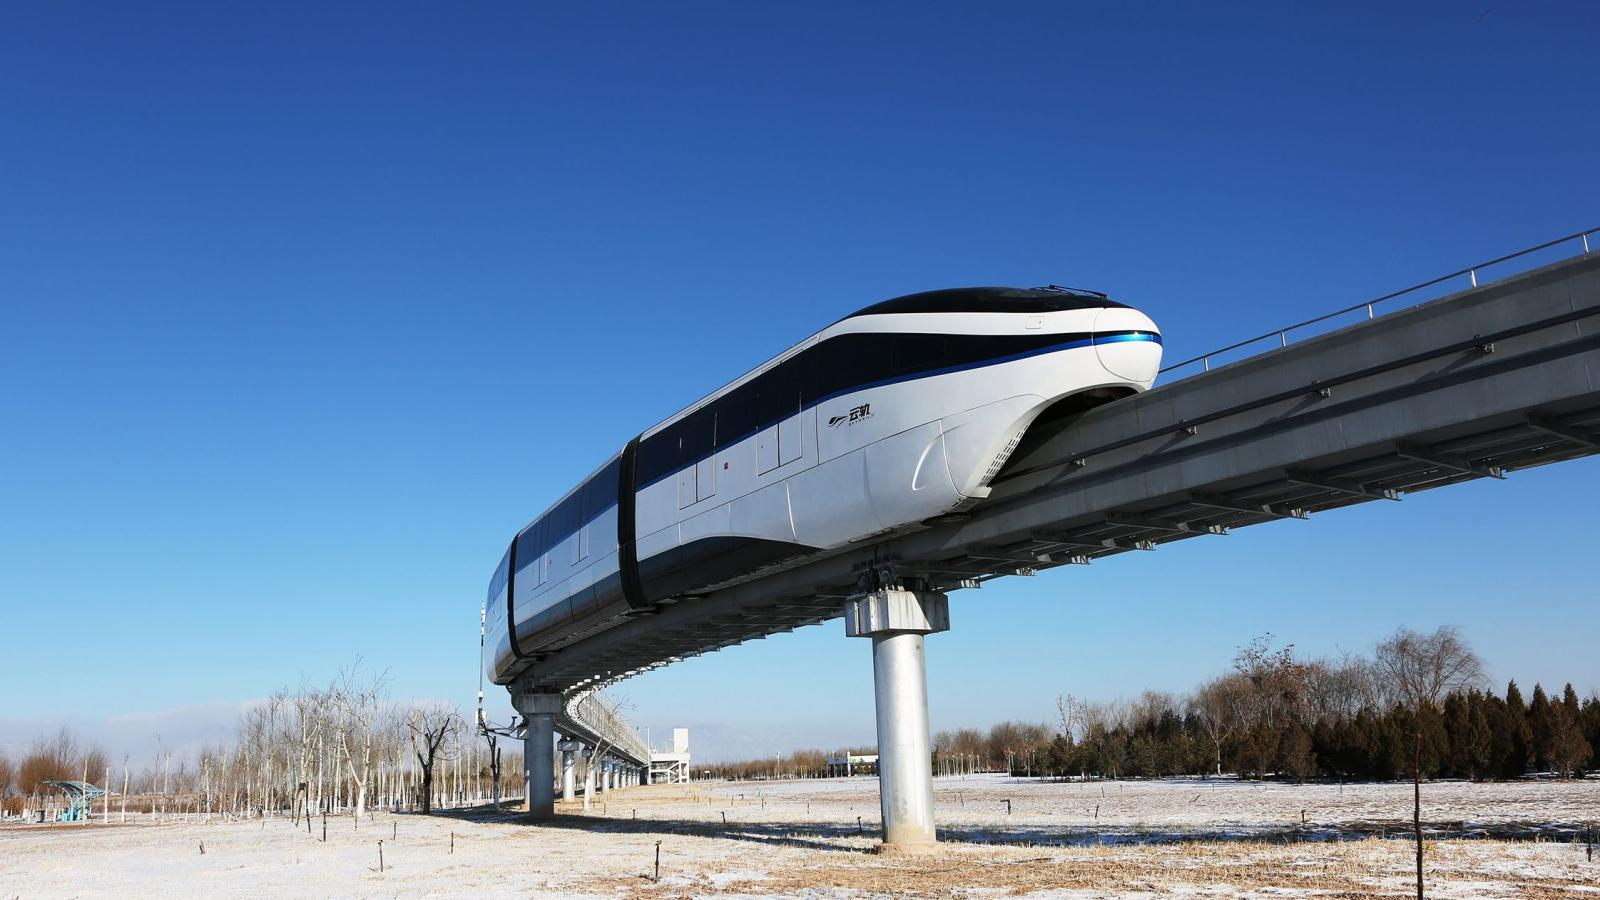 byd-monorails-2018-e1527225201934